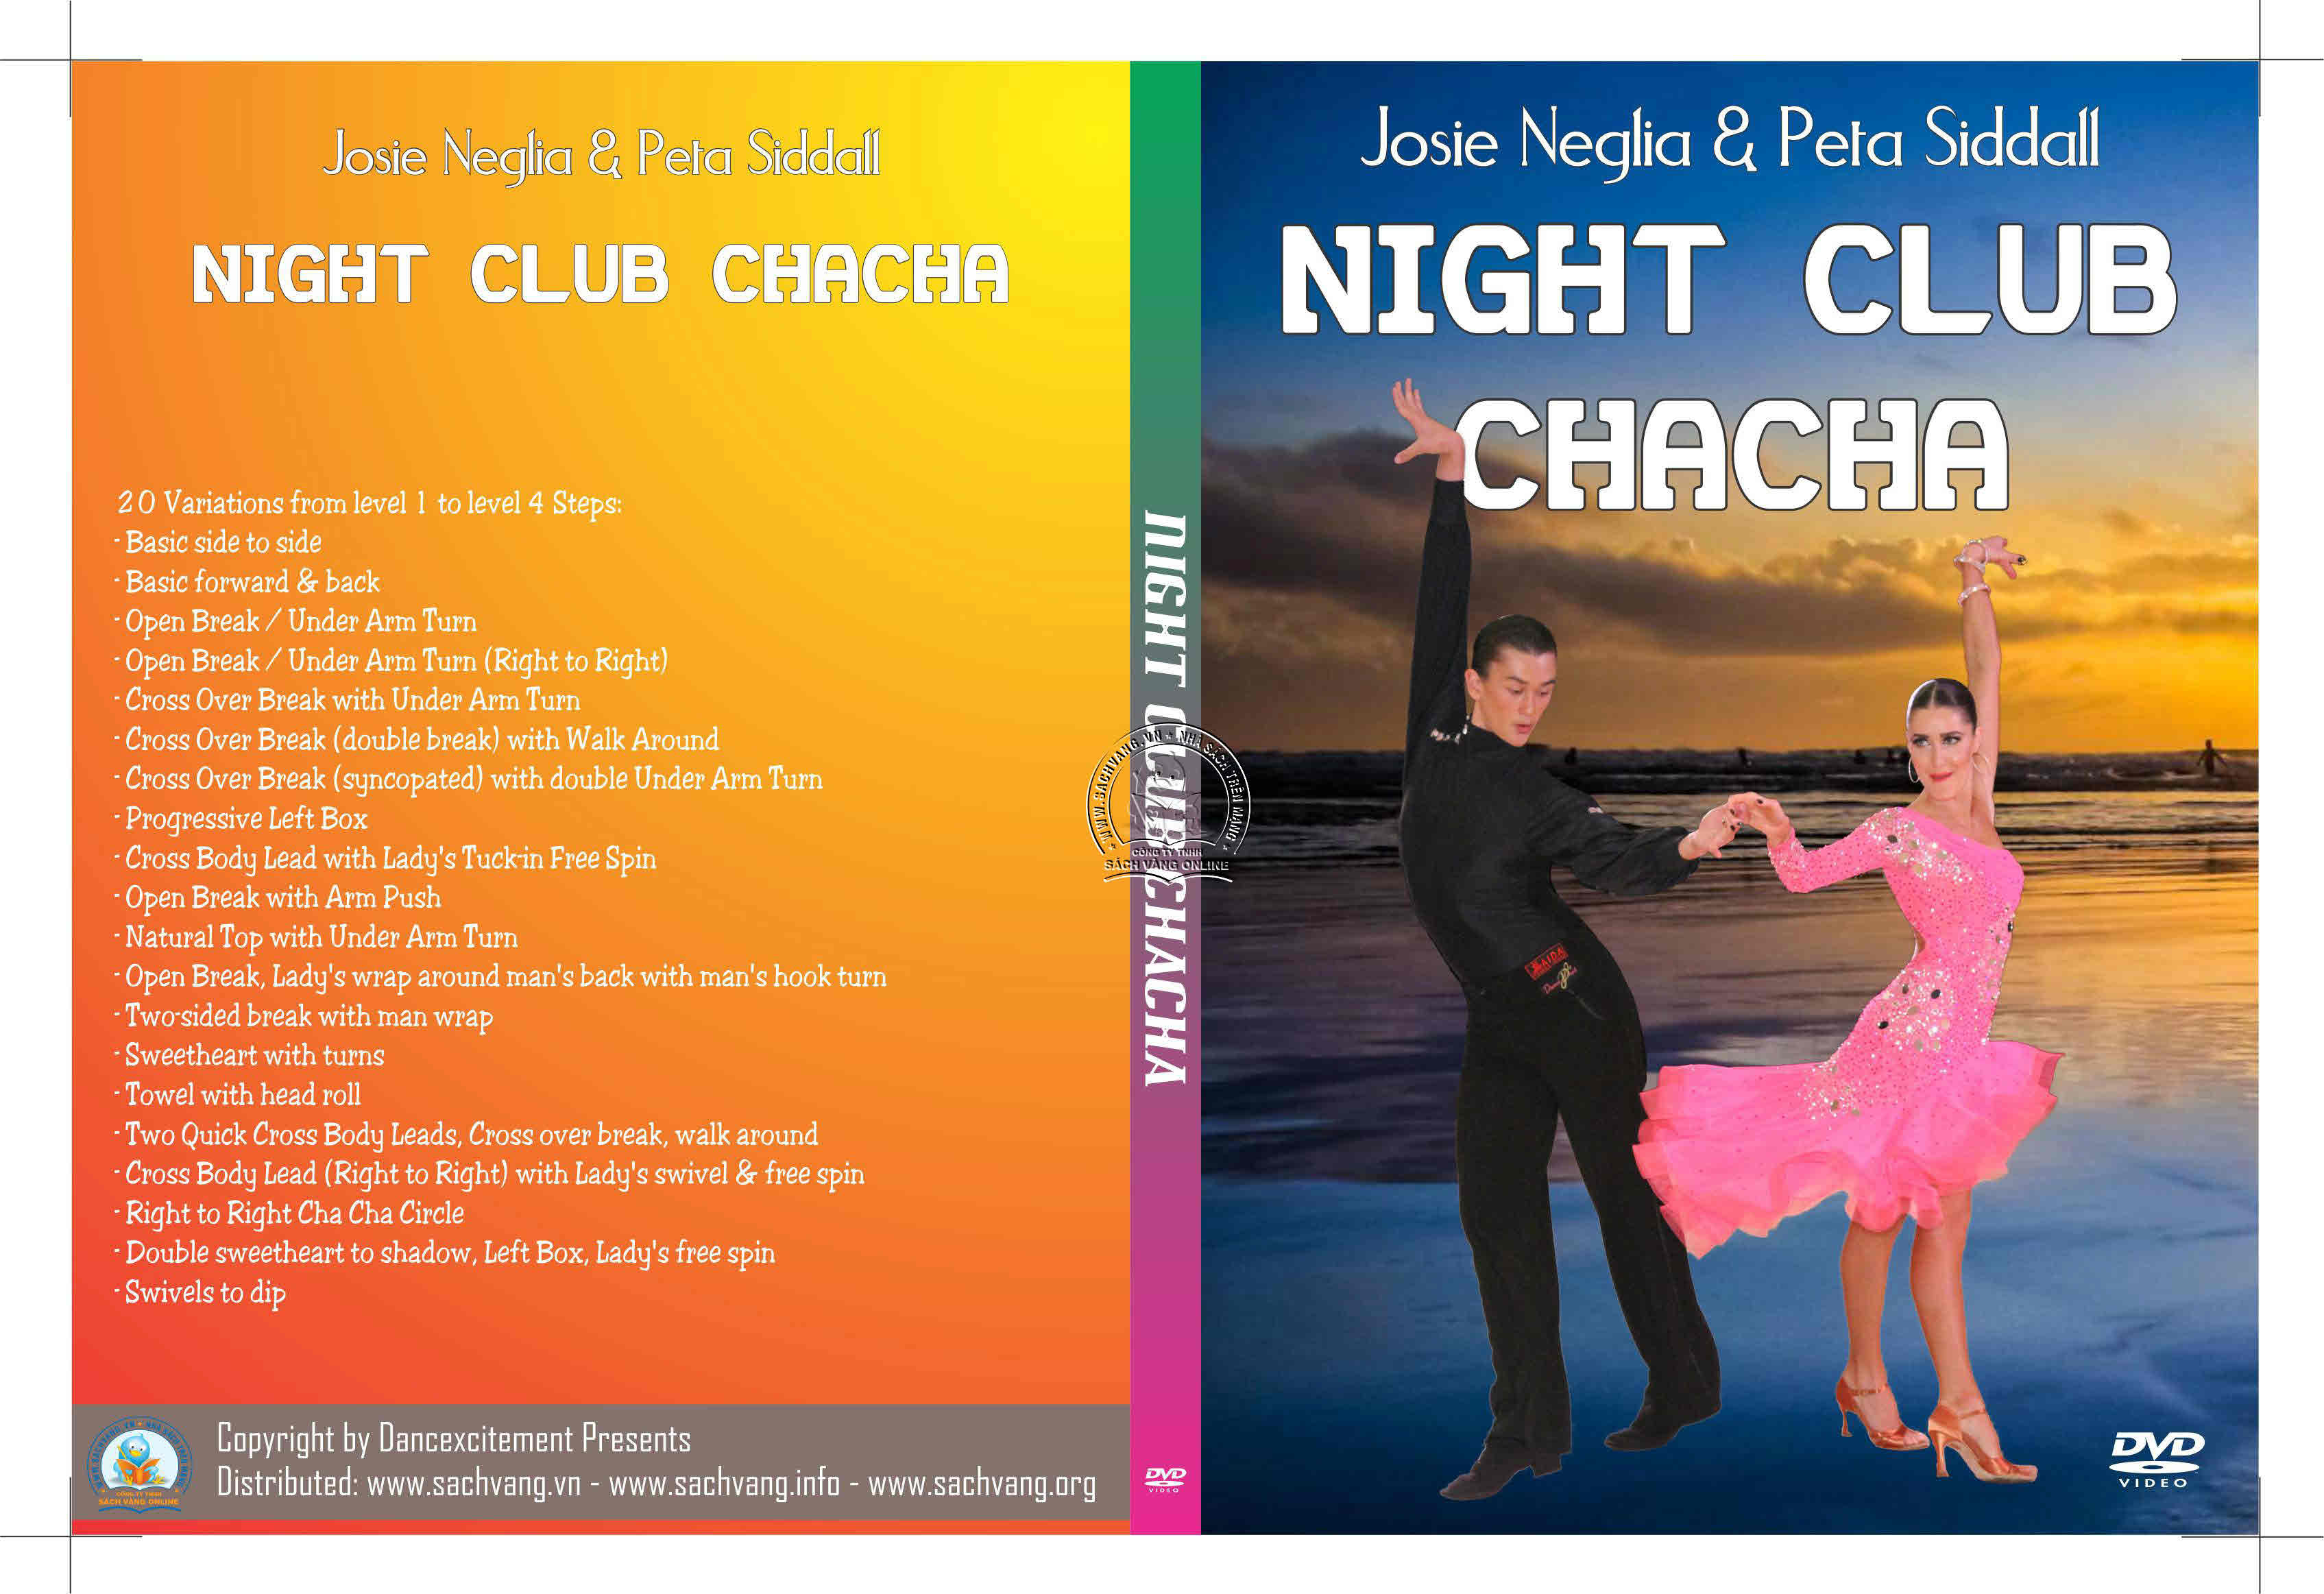 Night Club ChaCha With Josie Neglia and Peta Siddall cover